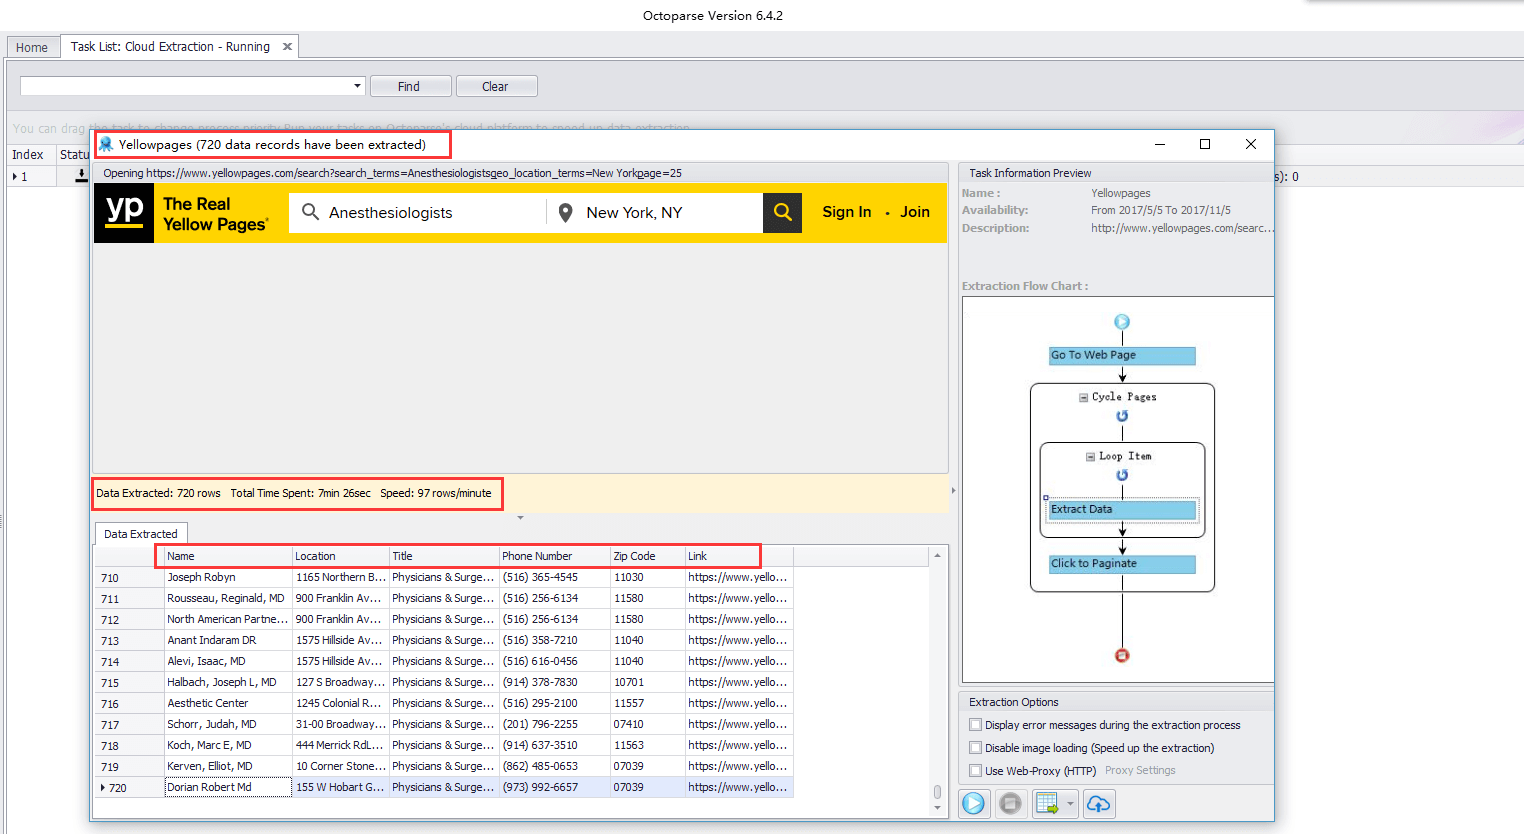 https://www.octoparse.com/media/4304/yellowpages-result-octoparse.png